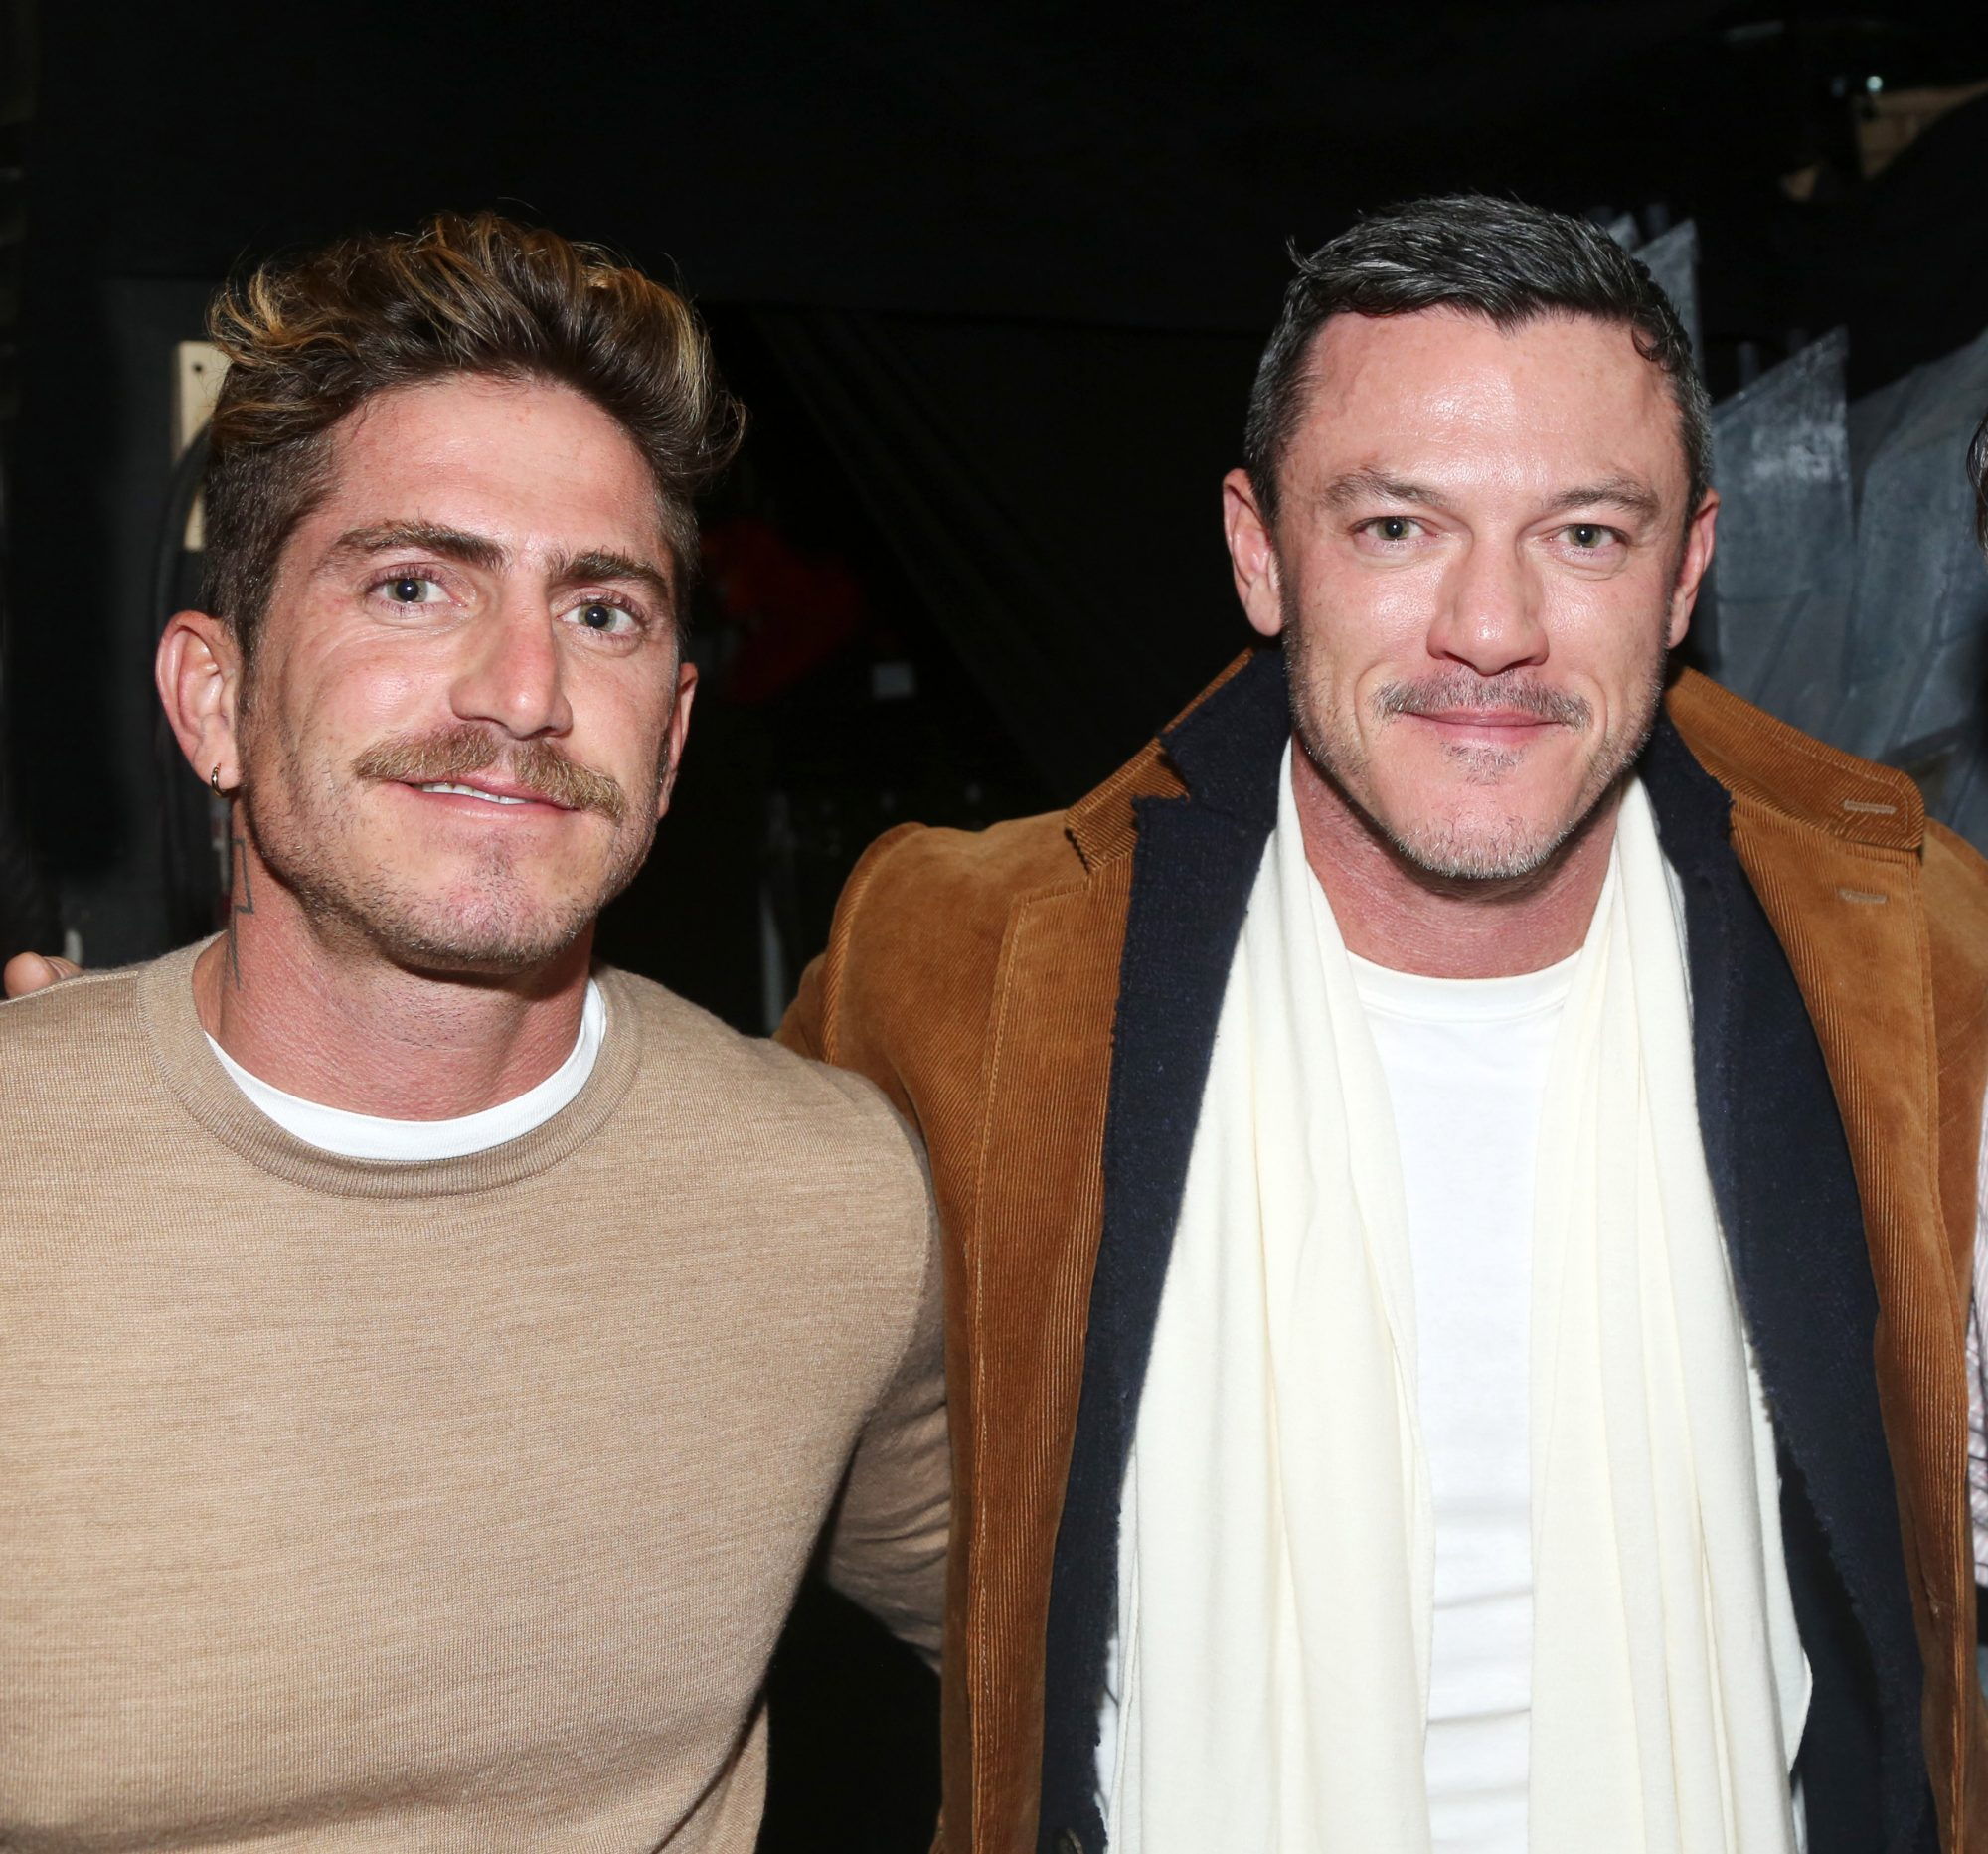 The actor and art director seem to have split as Evans, 41, recently unfollowed Olarra on Instagram and scrubbed his account of their photos together. Olarra, however, still has a photo of Evans on his Instagram account from September.                             A rep for Evans did not immediately respond to PEOPLE's request for comment.                             The pair made their romance Instagram official in February when Evans posted a video of the two together on vacation in Hawaii.